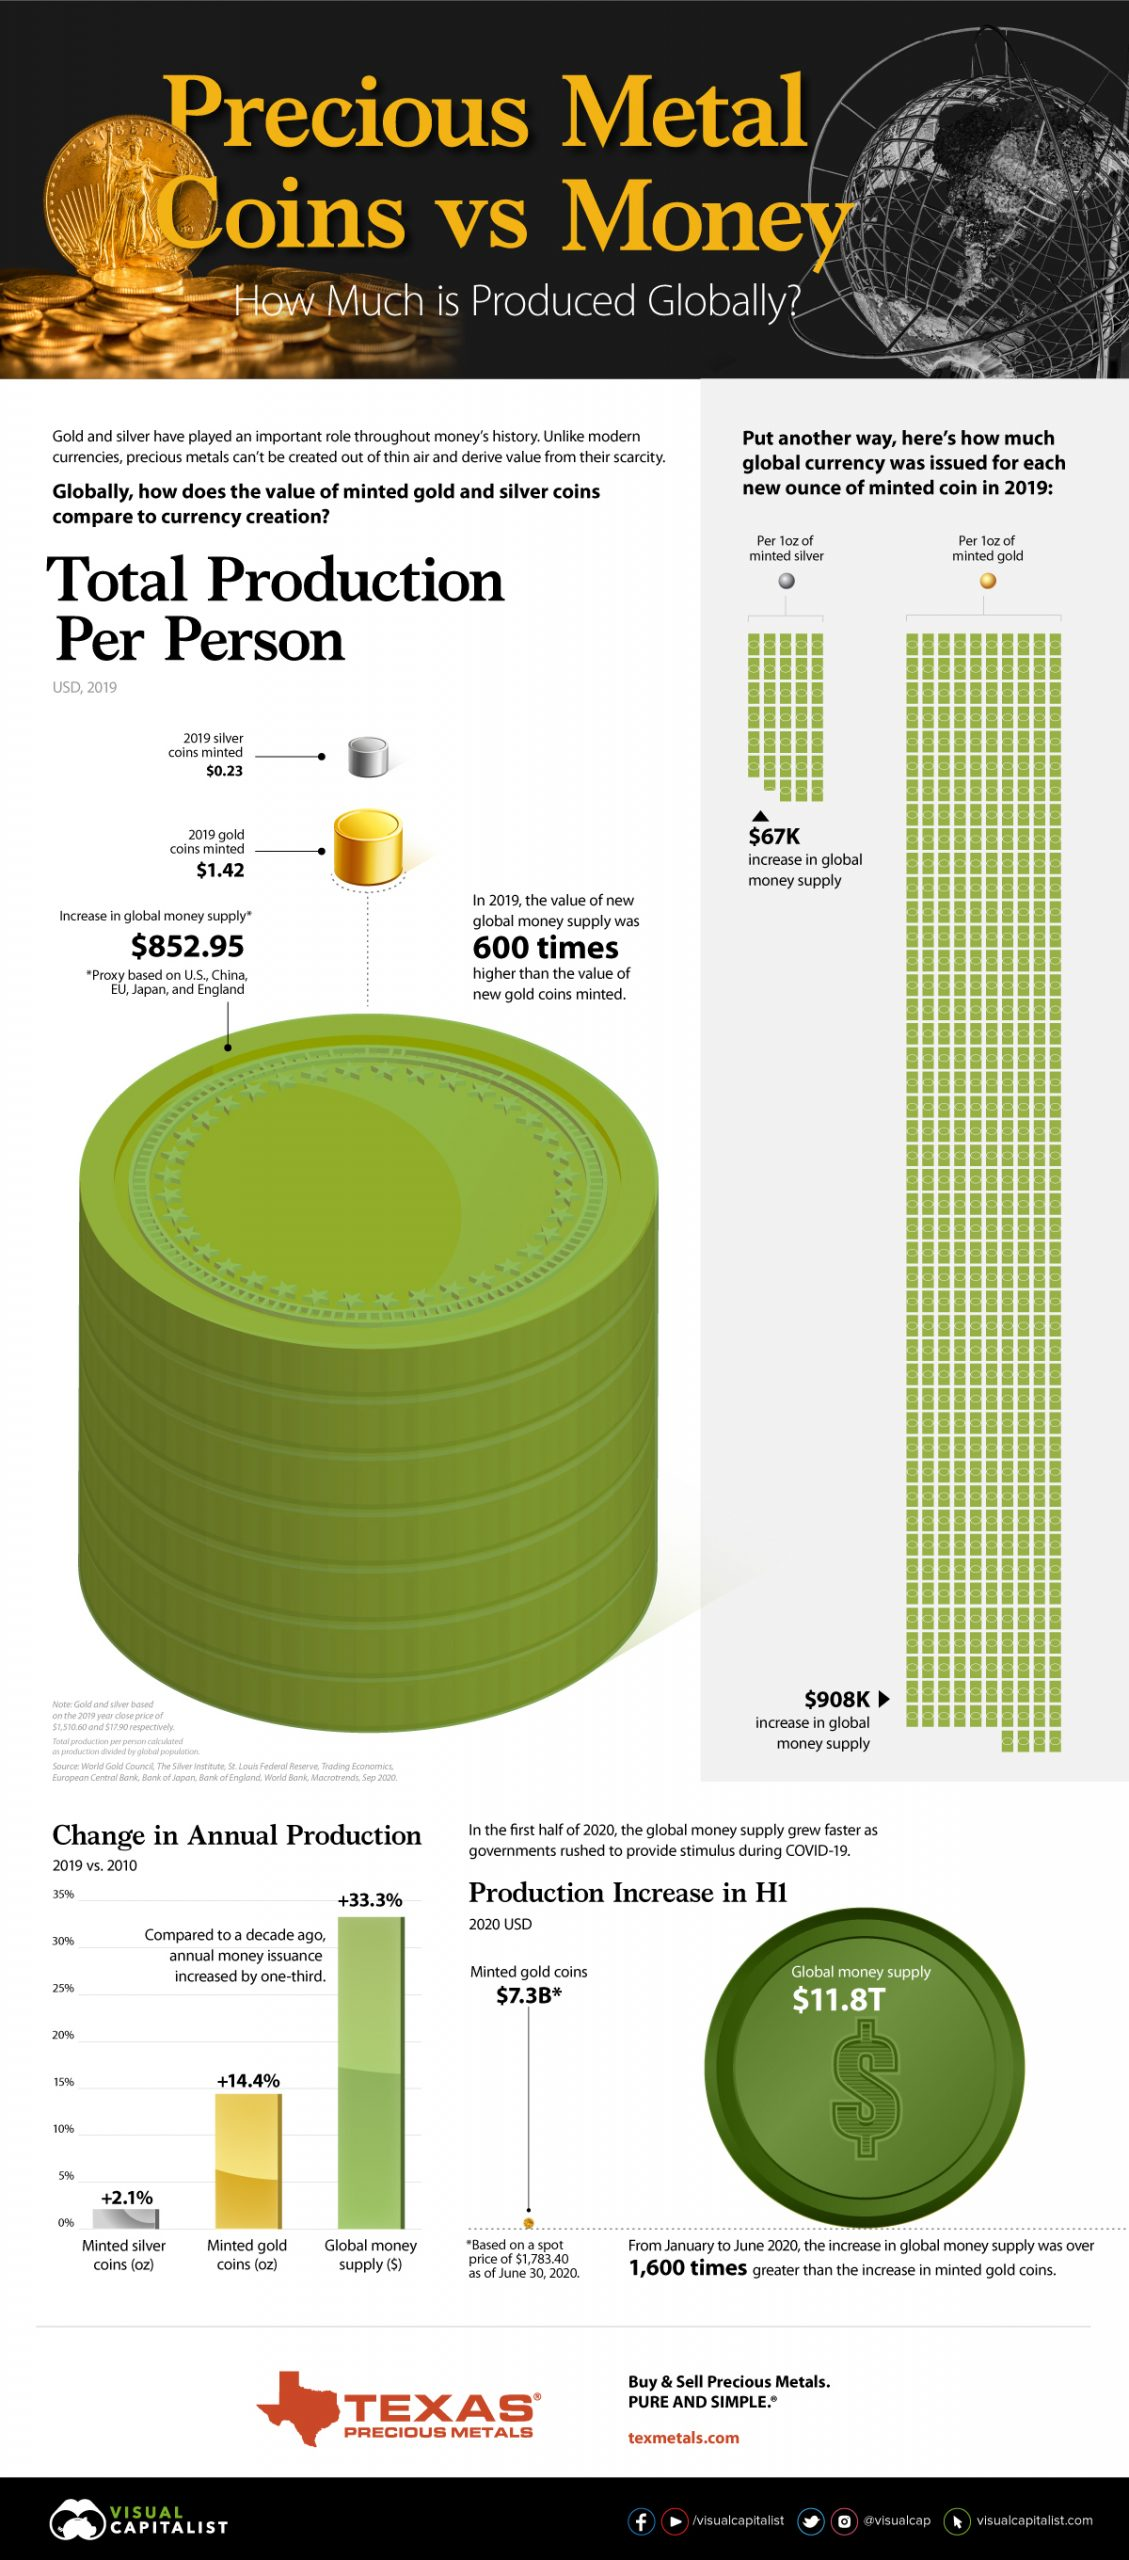 precious metal coins vs money global production header image